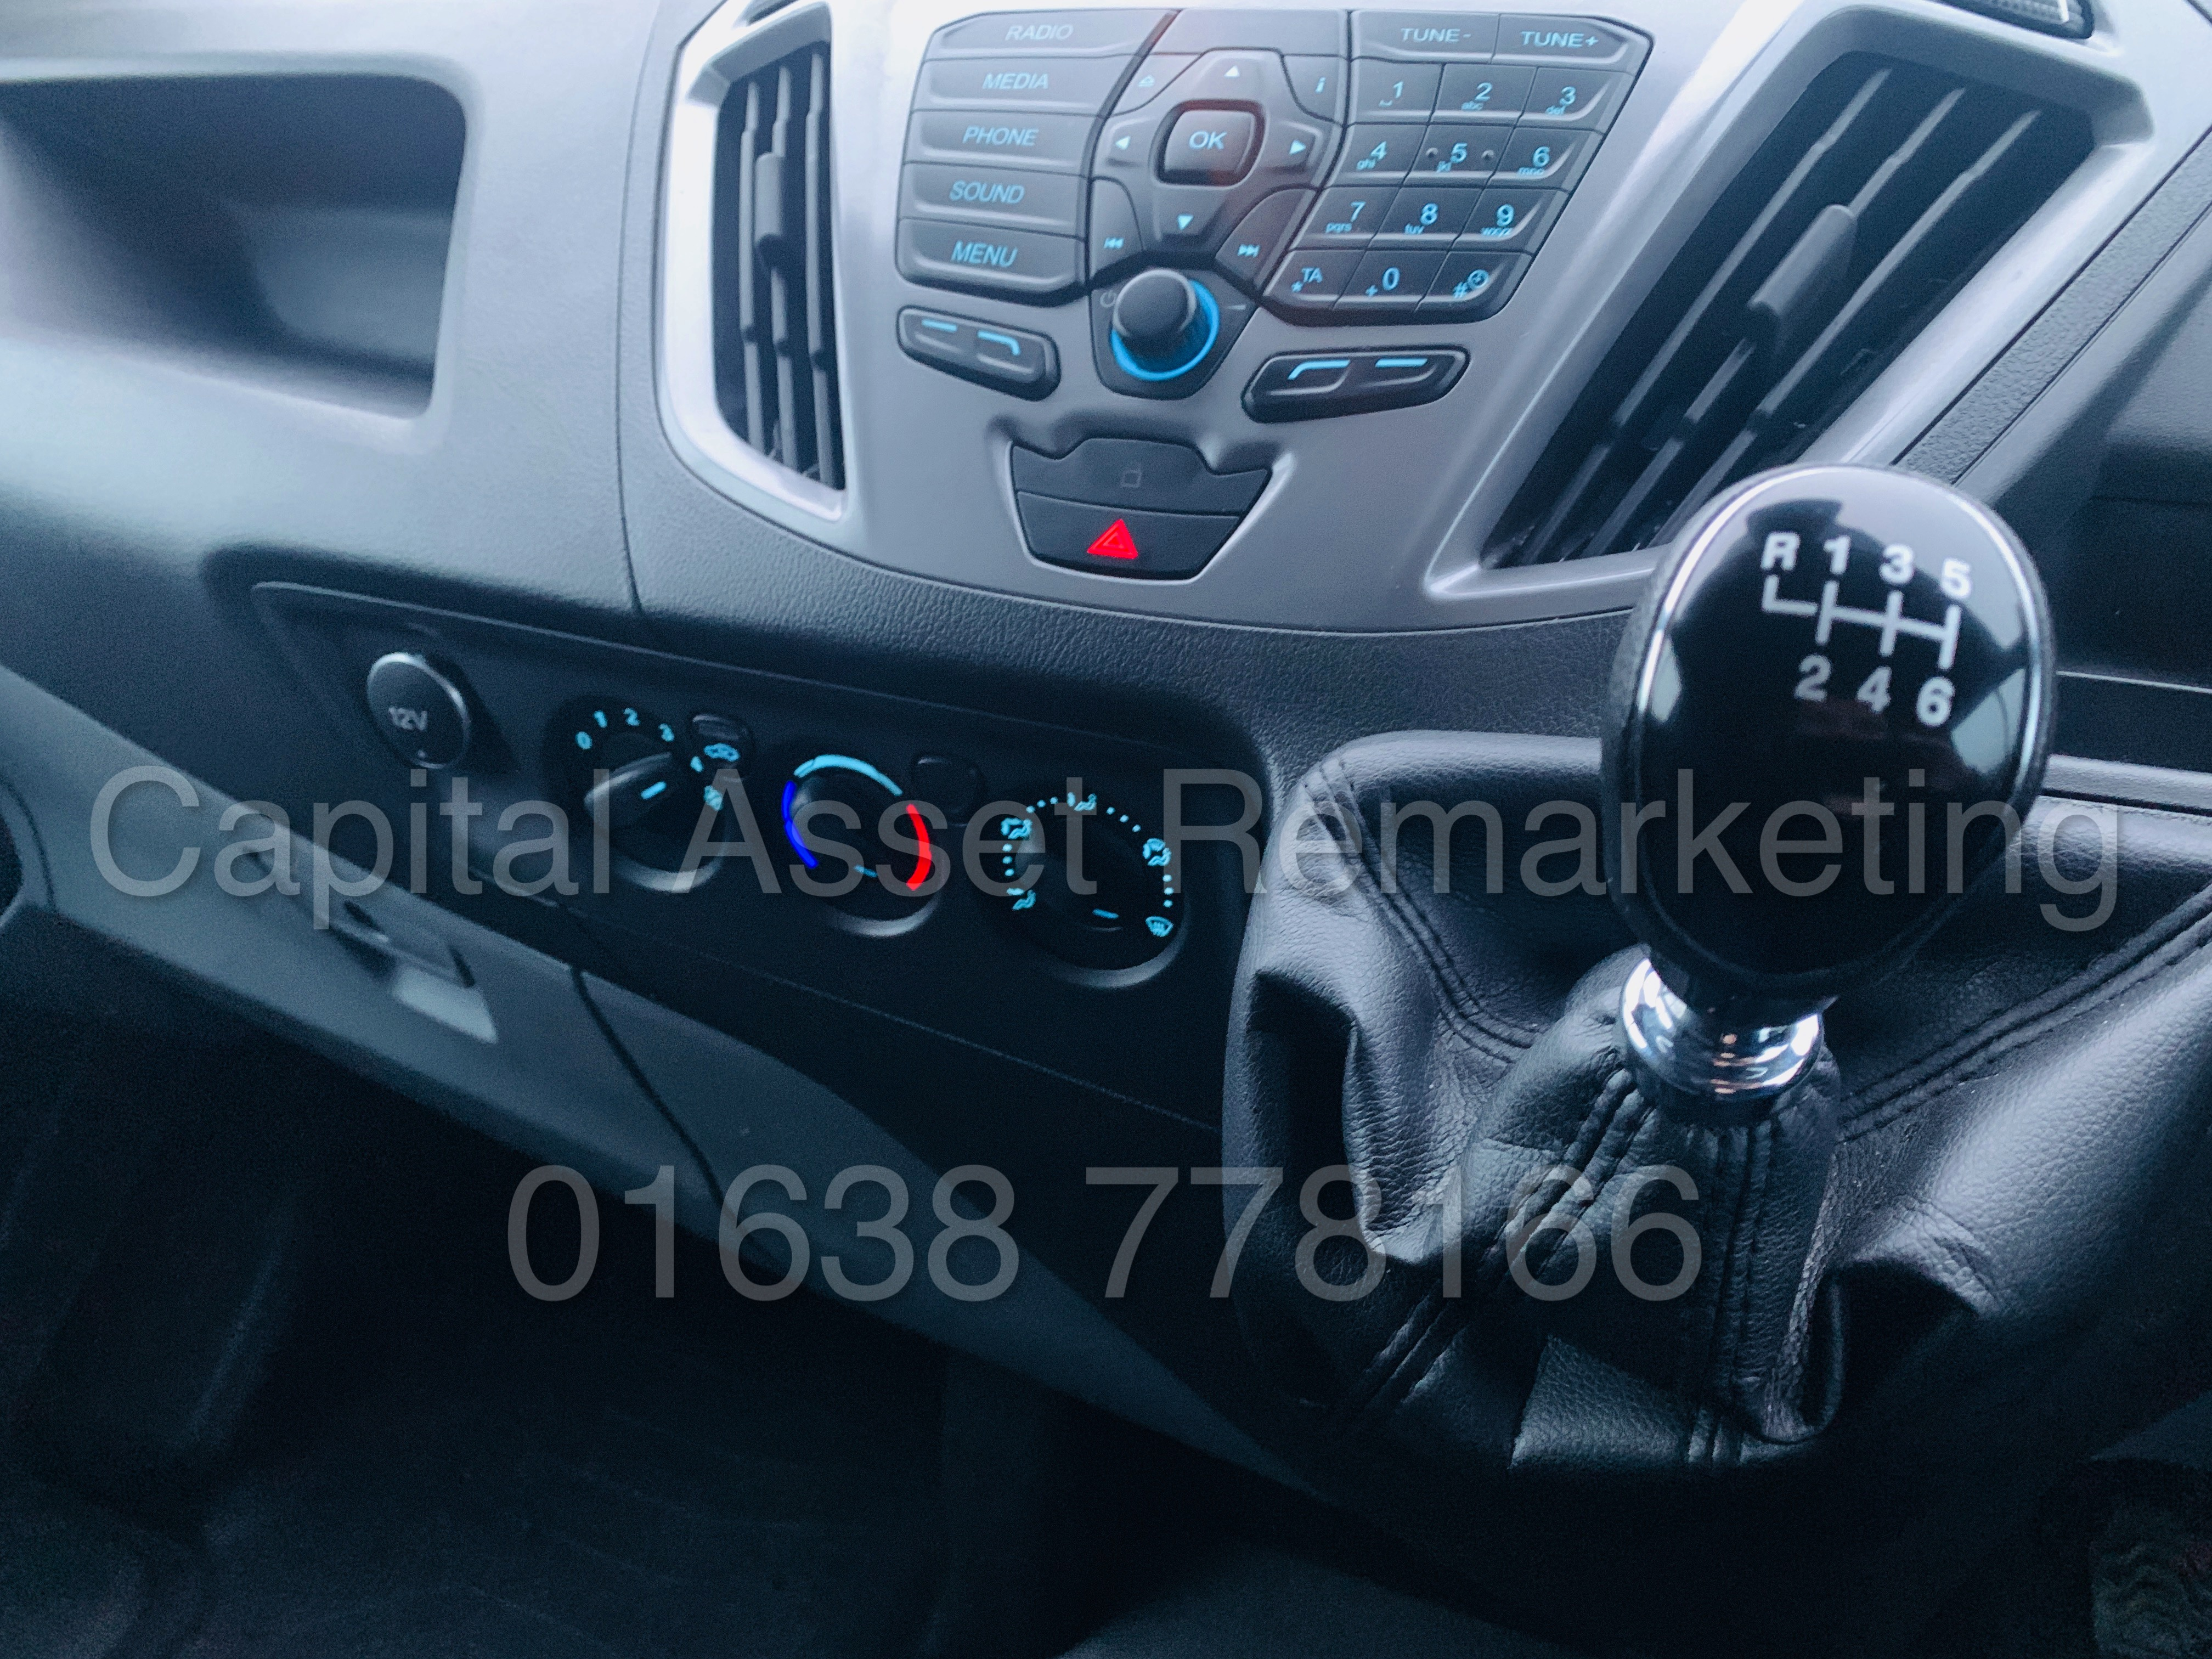 (On Sale) FORD TRANSIT *TREND* 290 SWB (2017 - EURO 6 / AD-BLUE) '2.0 TDCI - 130 BHP - 6 SPEED' - Image 36 of 41